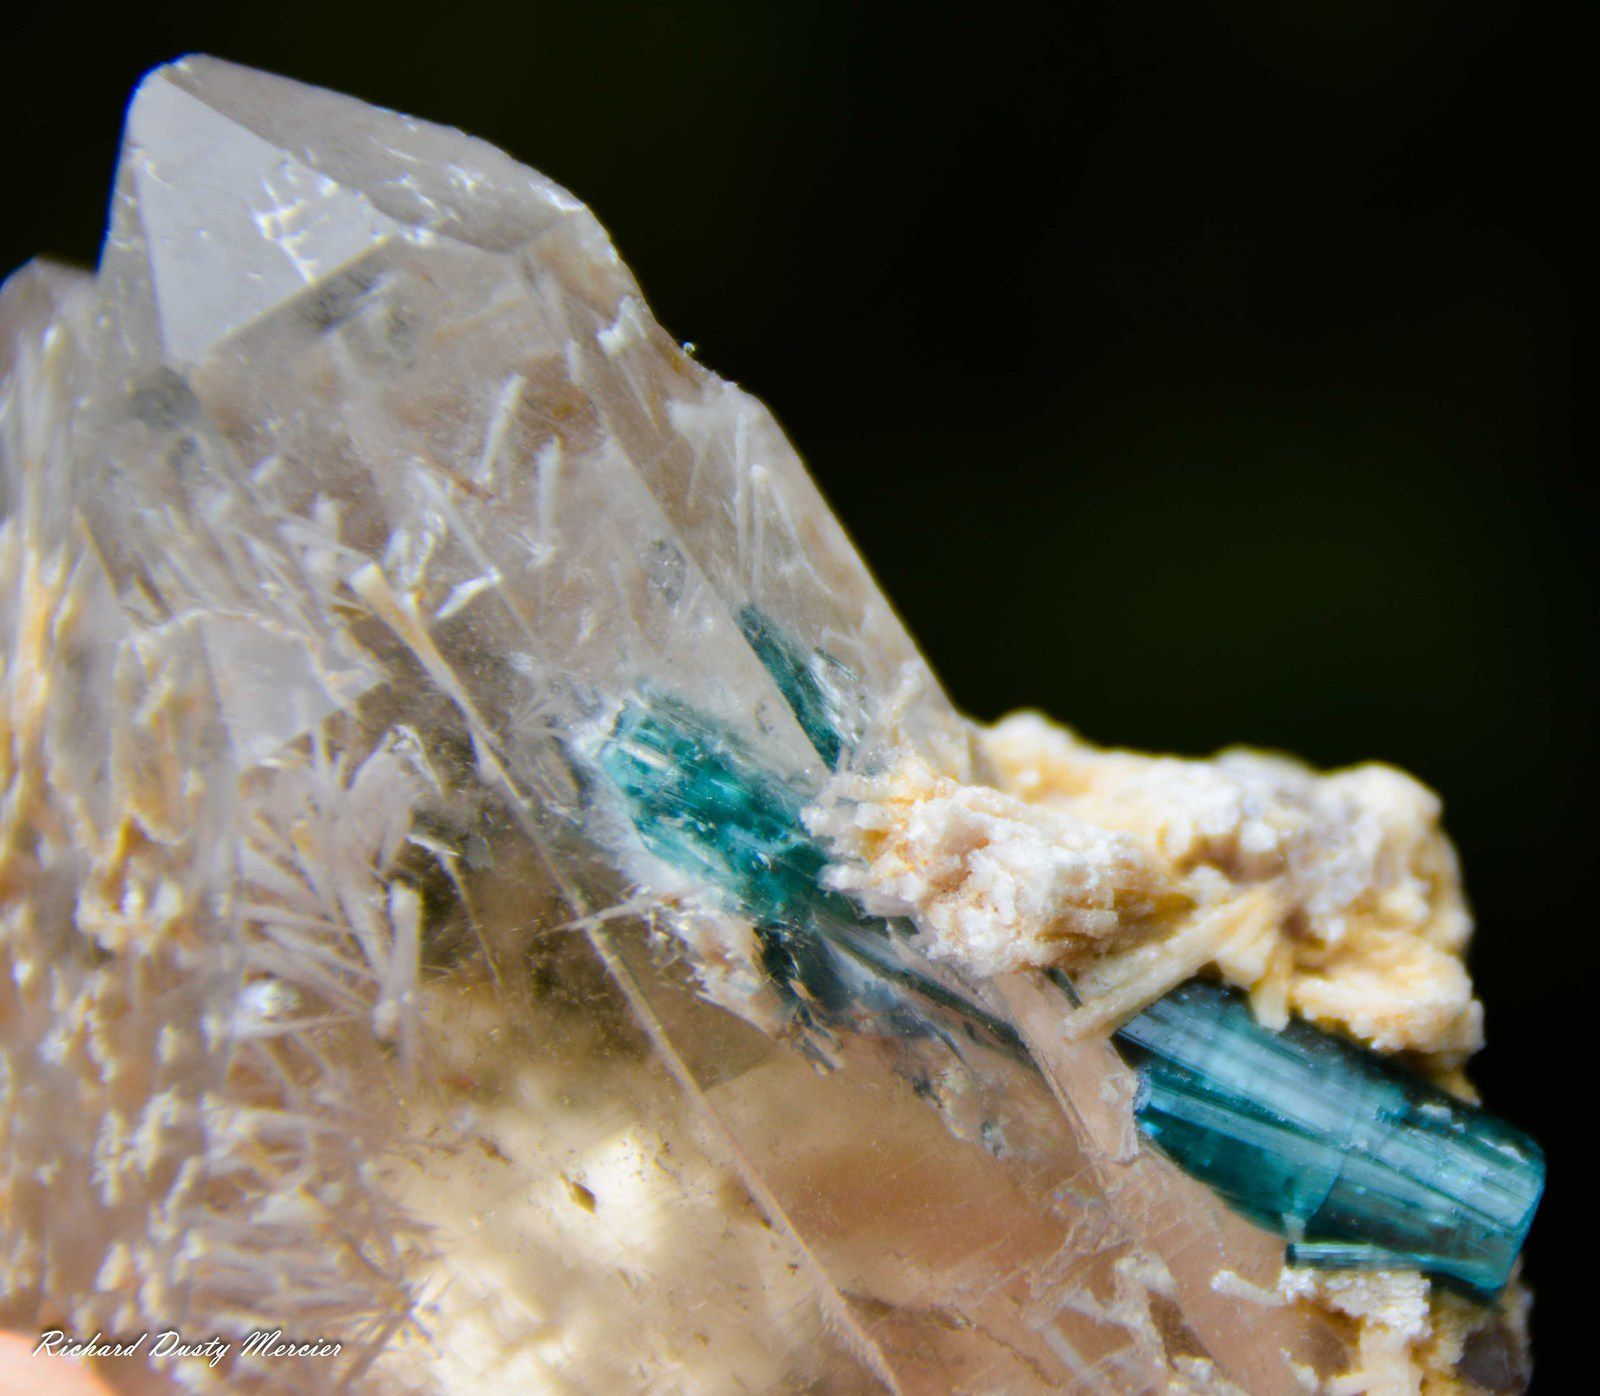 Blue Tourmaline Indicolite on Quartz from Brasil